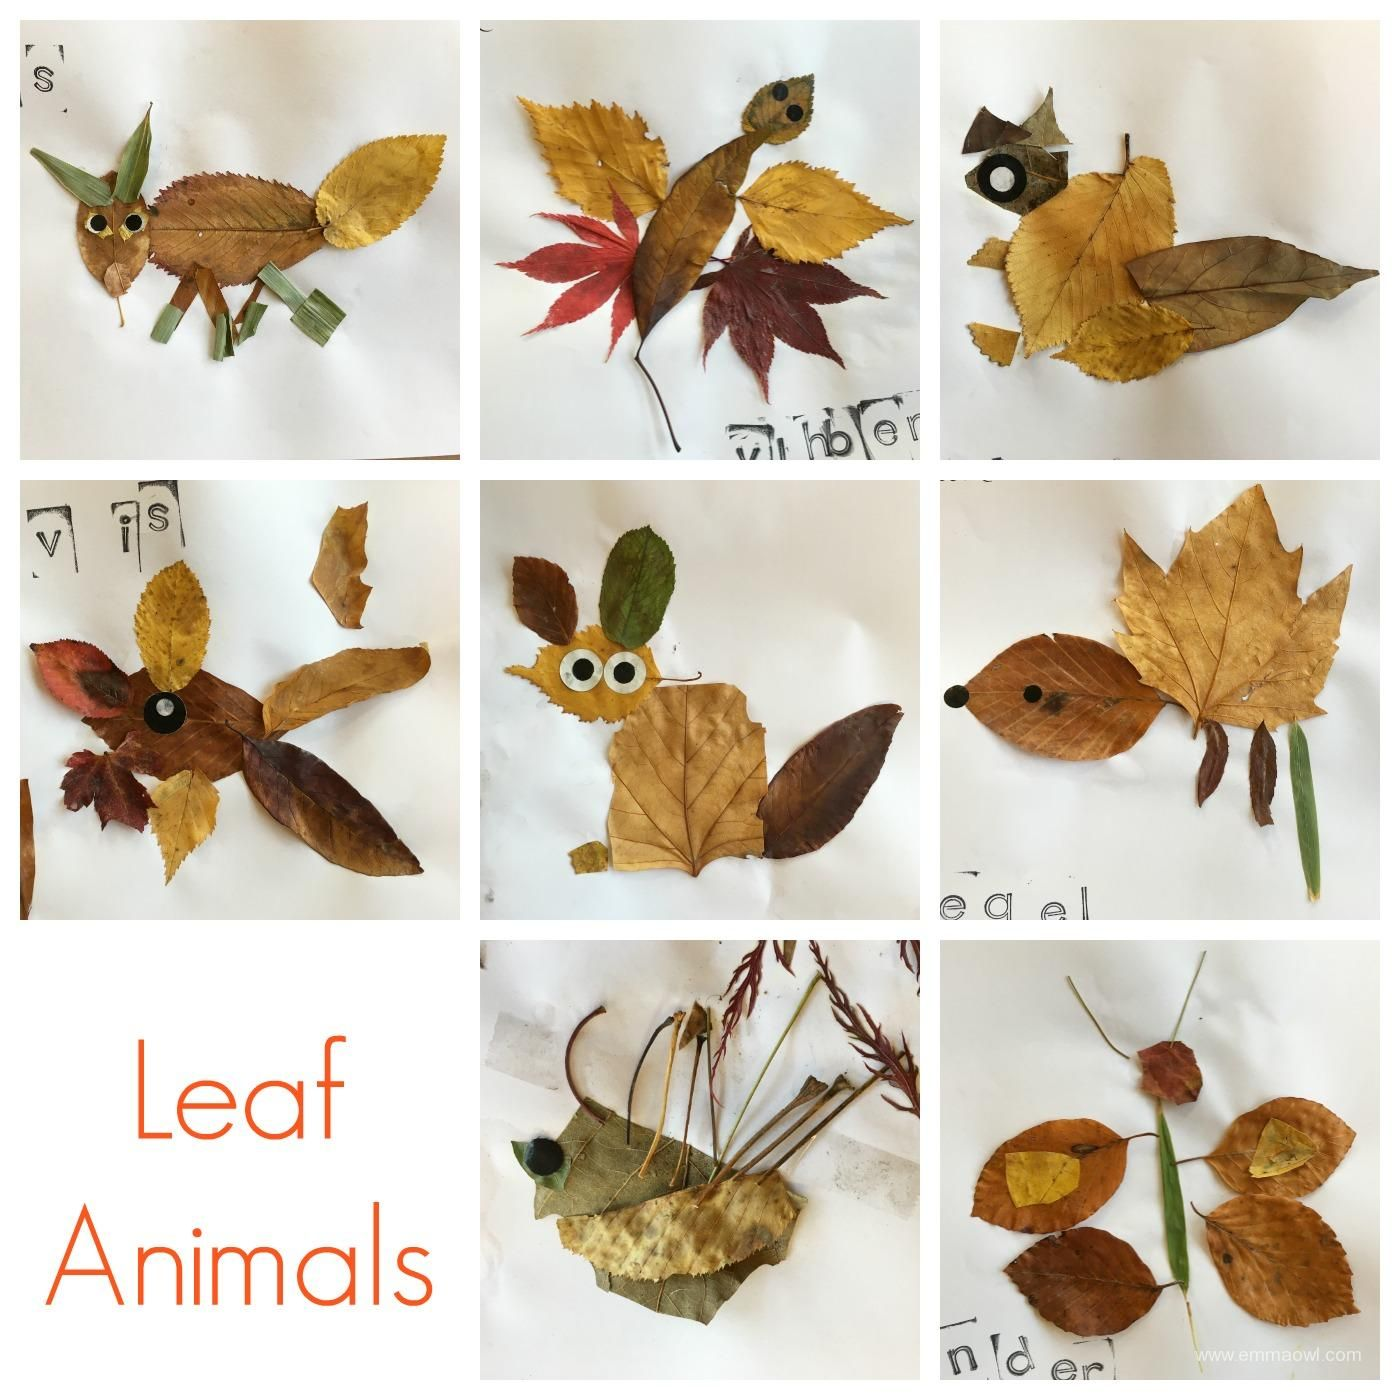 Leaf Animals Great Autumn Project For Art Class Or A Terrific Fall Activity To Do With